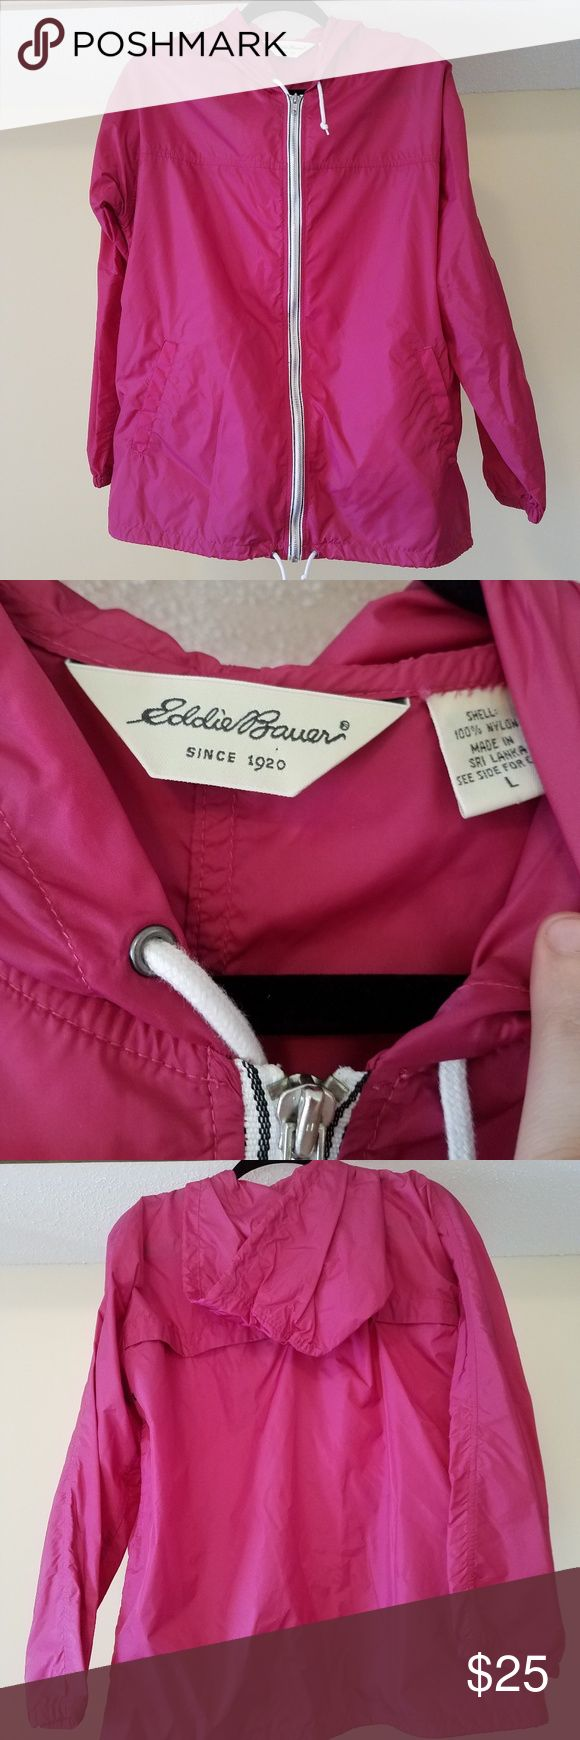 Eddie Bauer Raincoat / Jacket Large Eddie Bauer Raincoat / Jacket  Size: Large Material: Nylon  Beautiful magenta raincoat with a hood! This jacket was lightly used but looks new!  Please ask any and all questions prior to purchasing!  Happy Shopping! :) Eddie Bauer Jackets & Coats